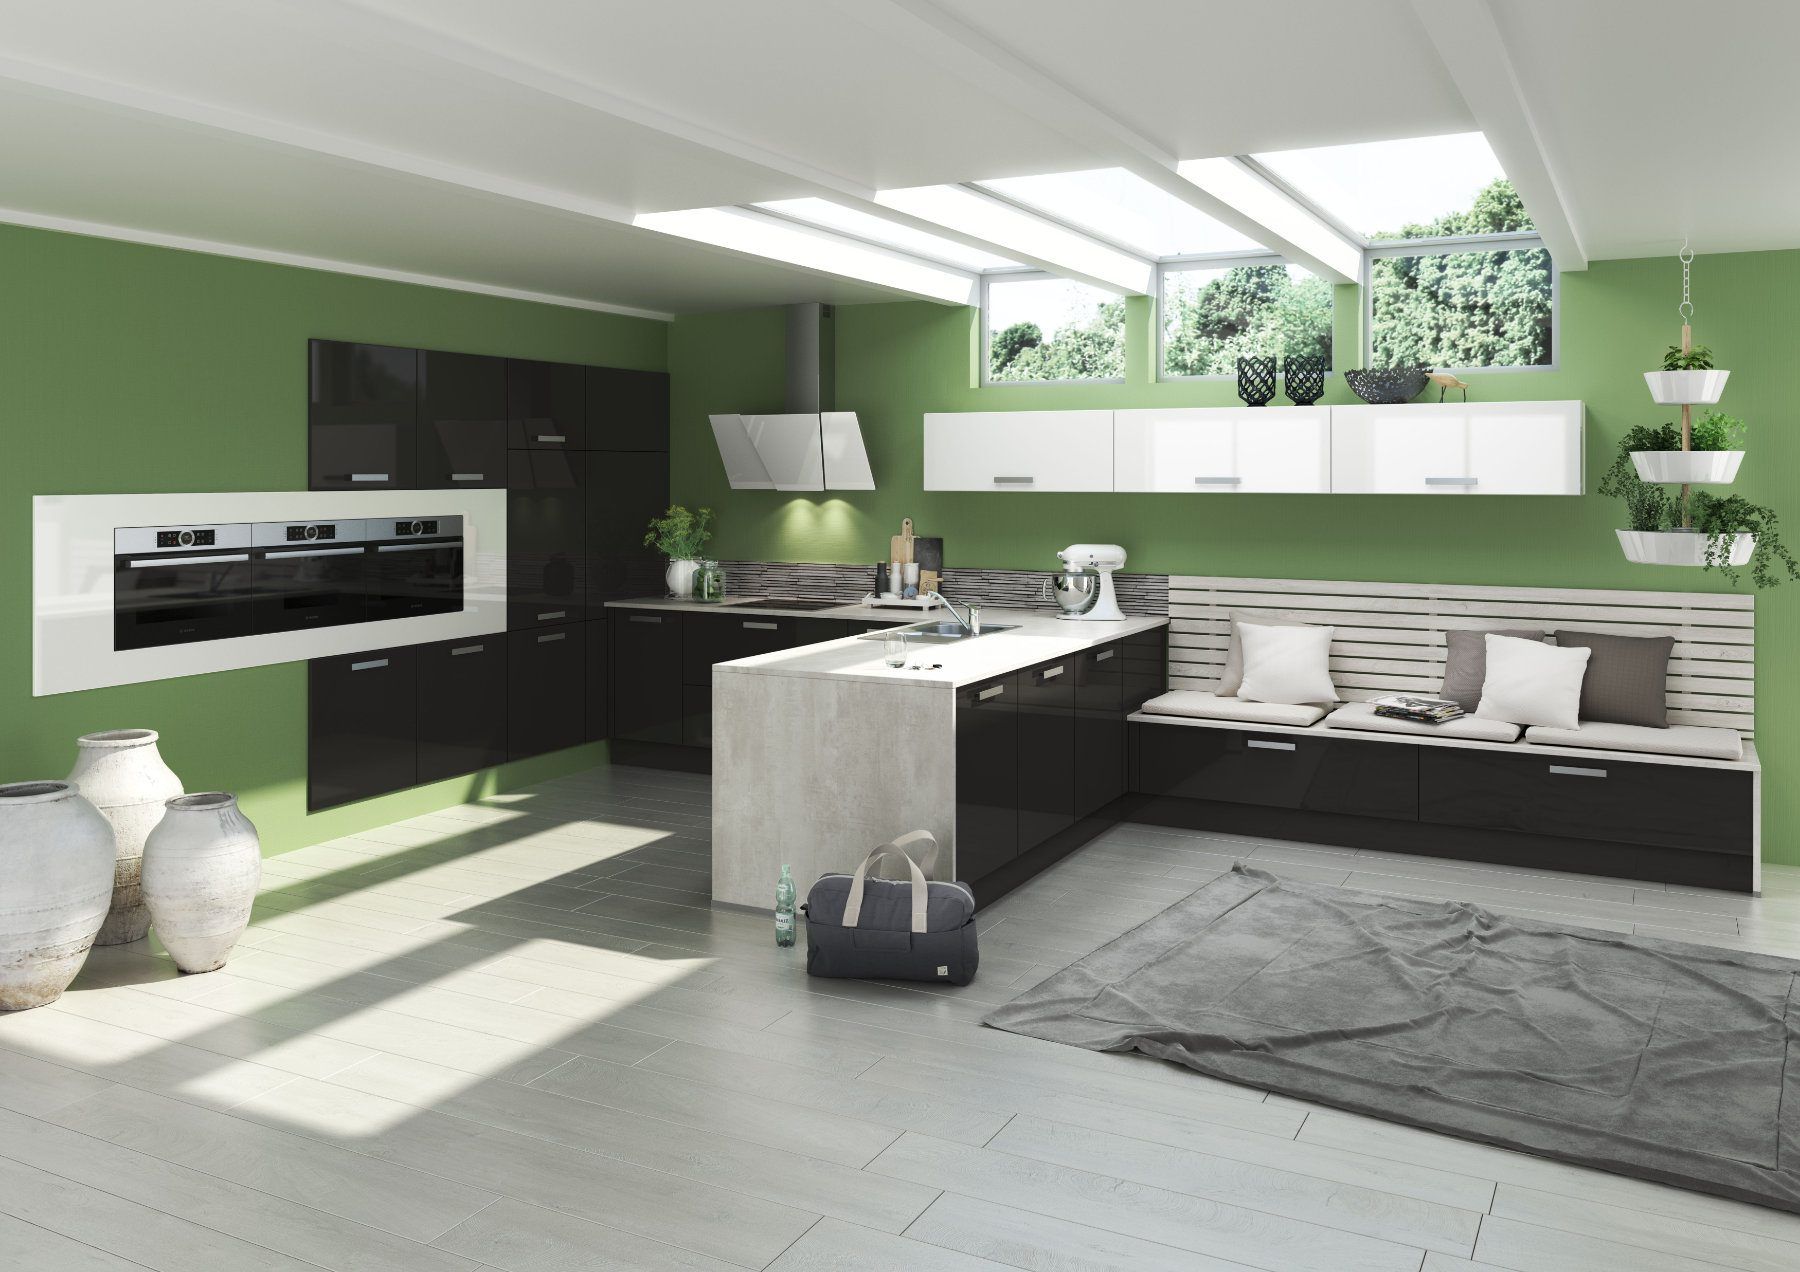 Bauformat Monochrome Gloss Kitchen With Lime Green Wall 1 | MHK Kitchen Experts